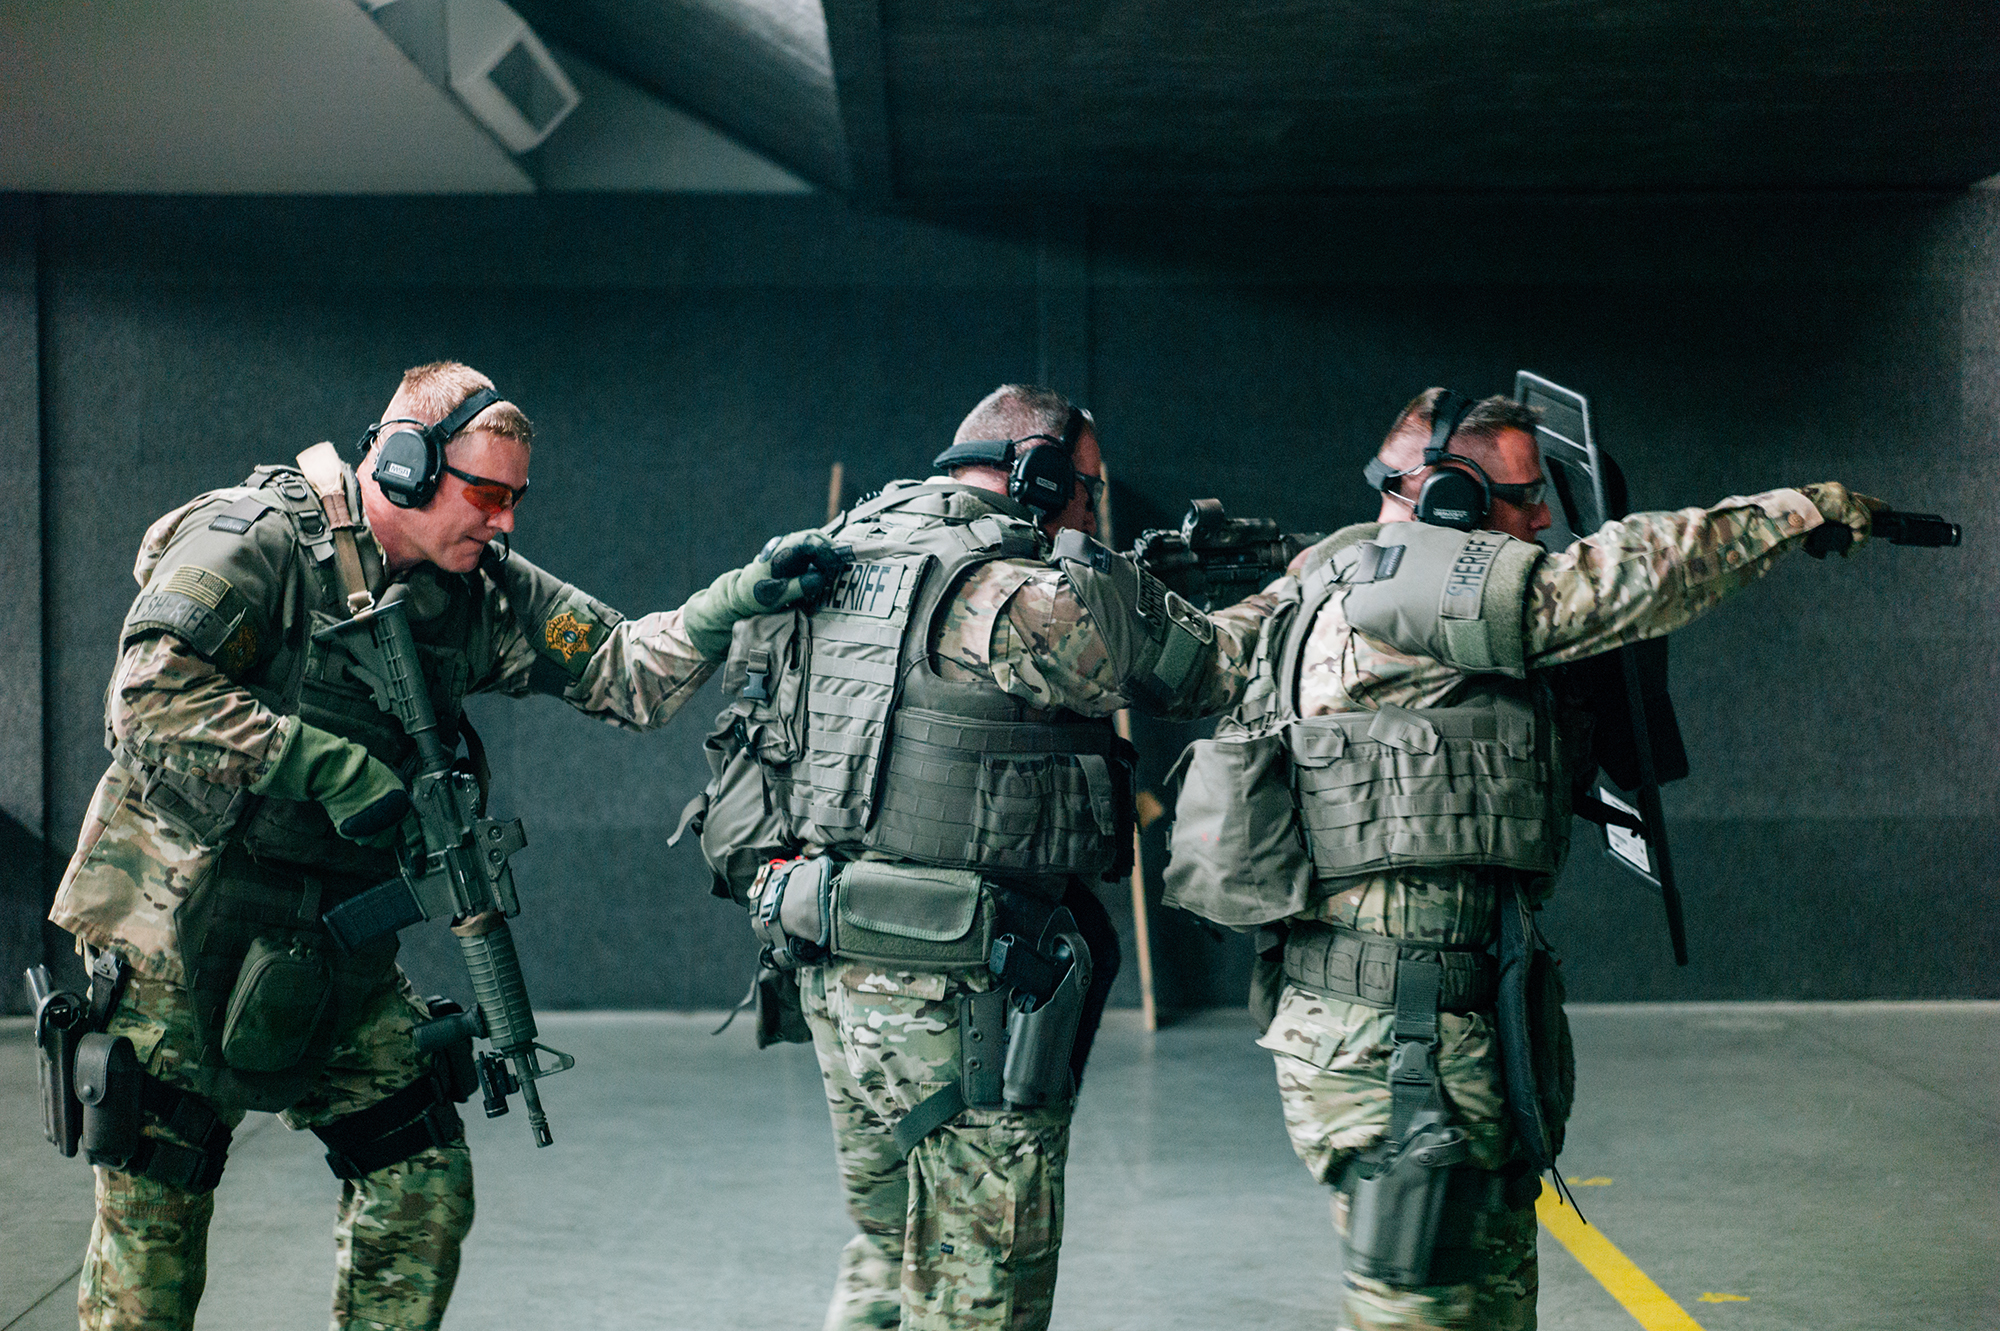 SWAT (Special Weapons and Tactics)